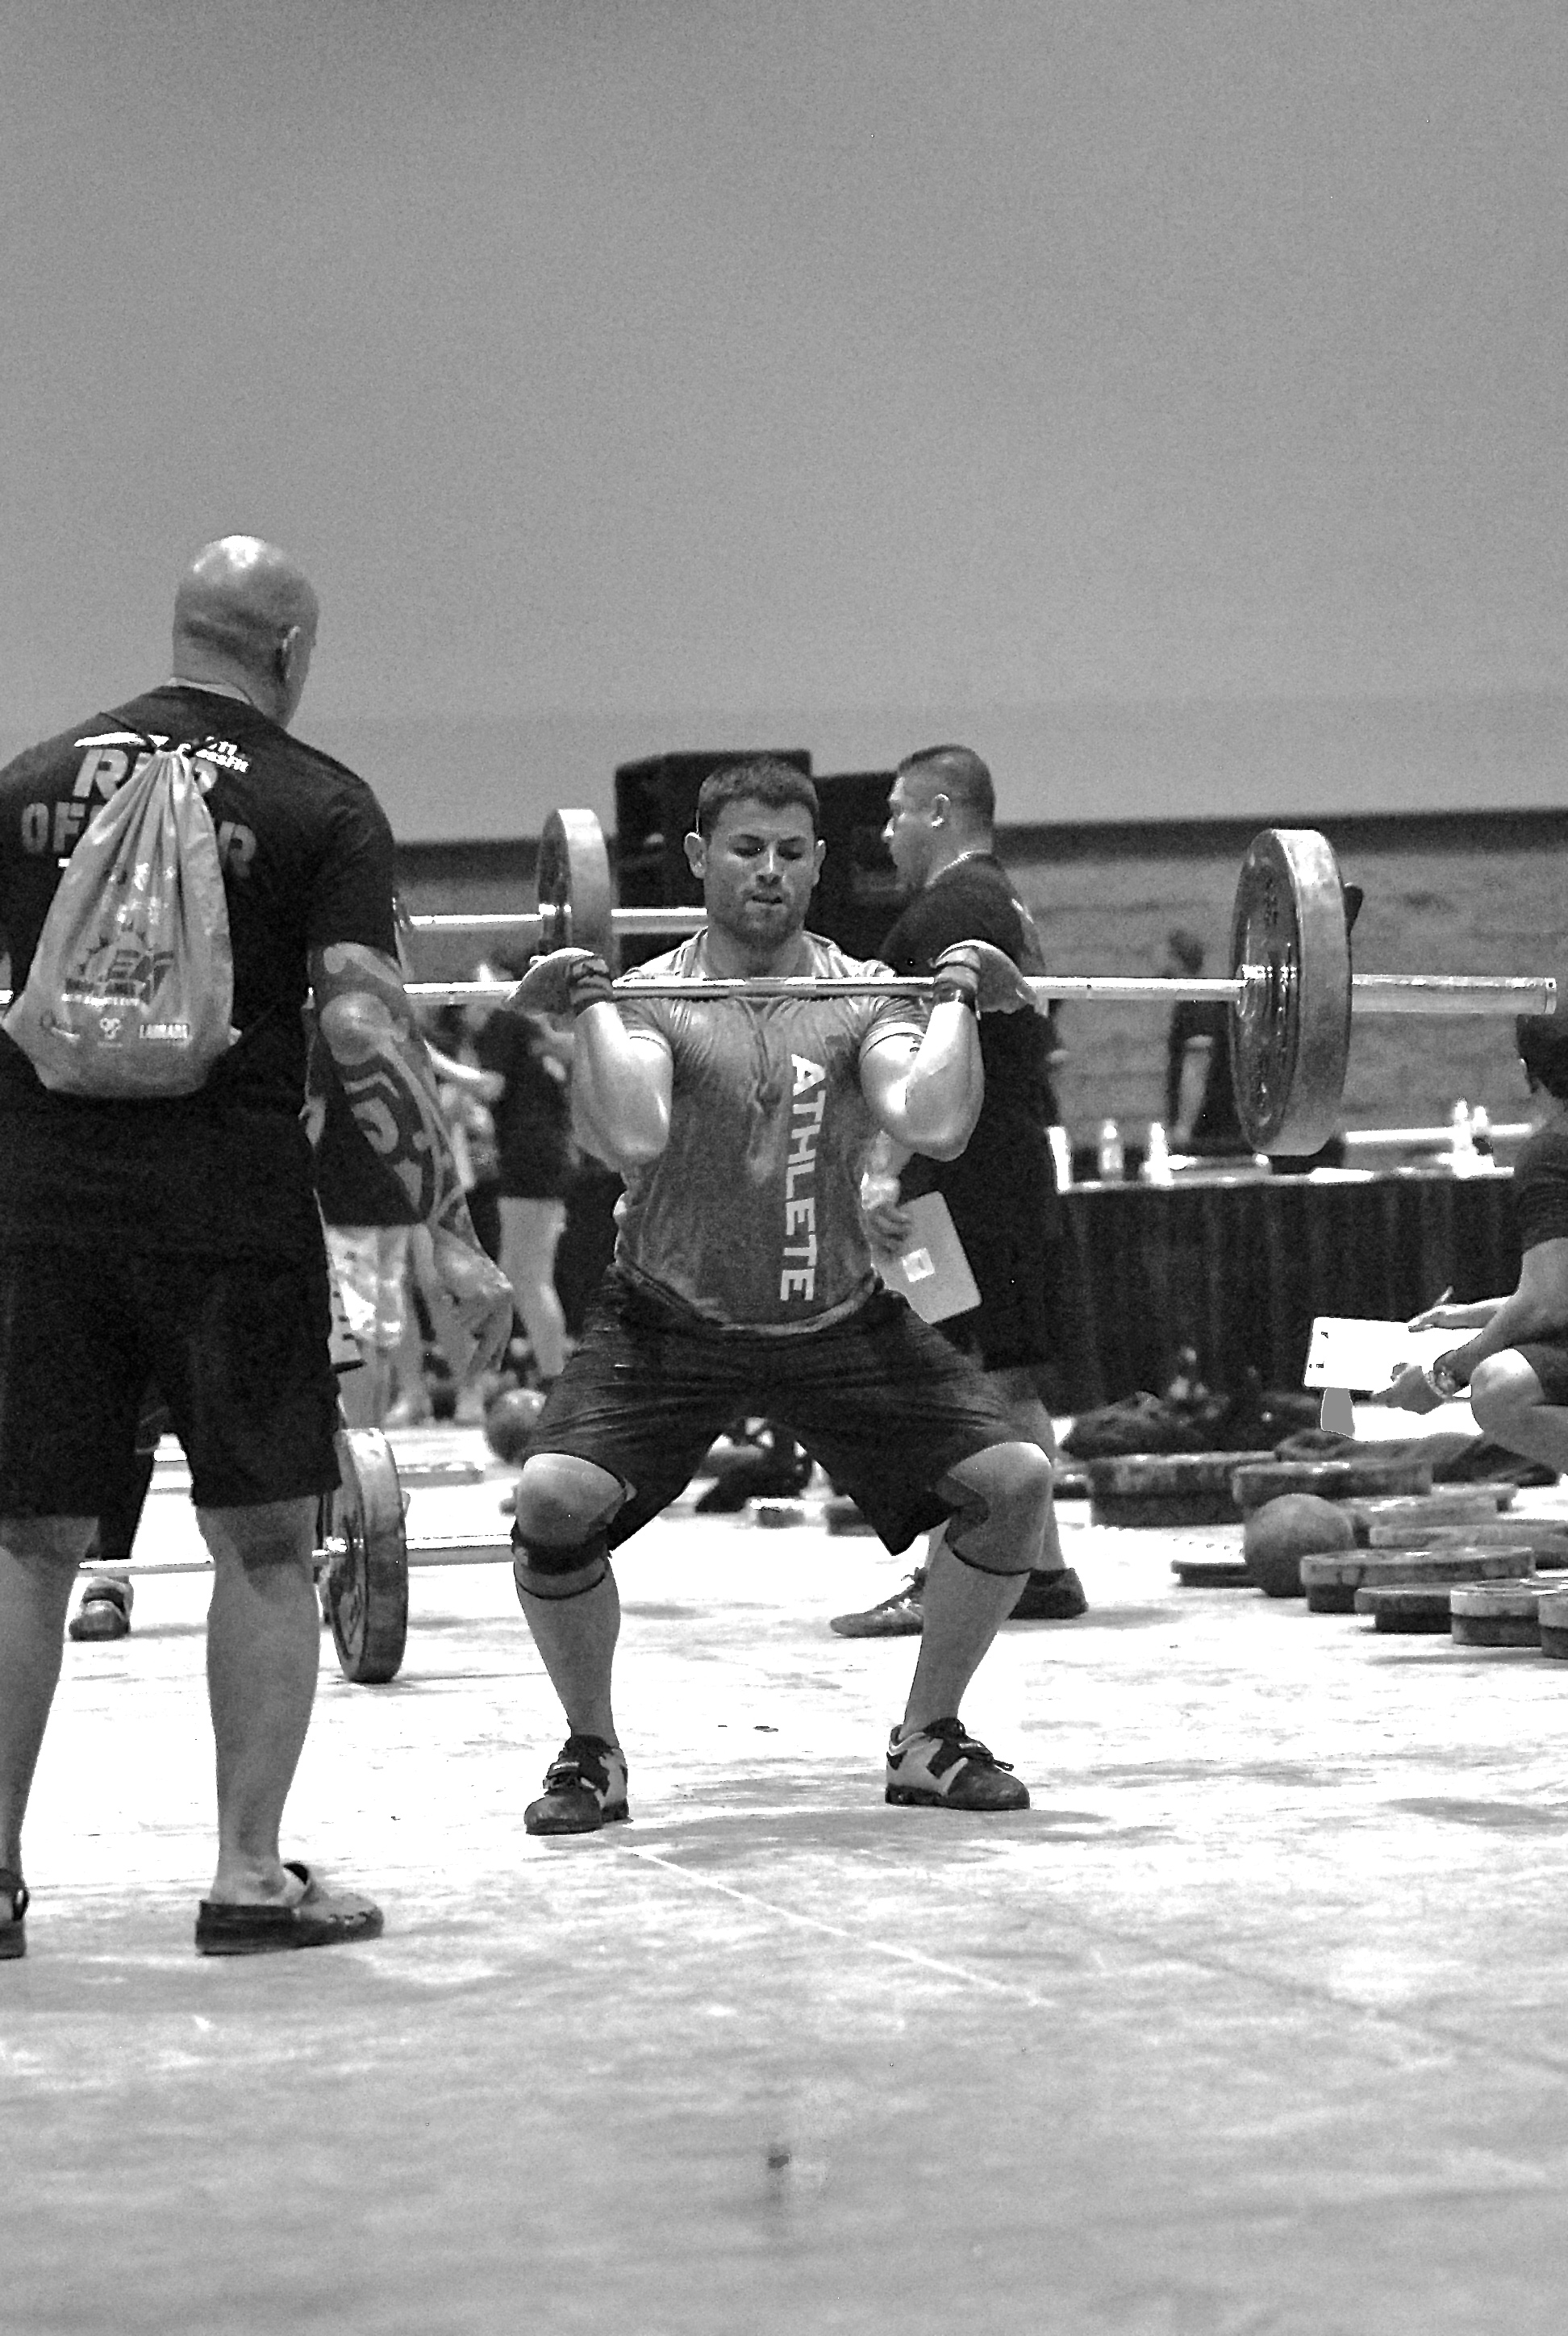 Victor Rodriguez- CrossFit Level 1 Trainer, CrossFit Olympic Trainer. OPT Athlete. Numerous competitions.